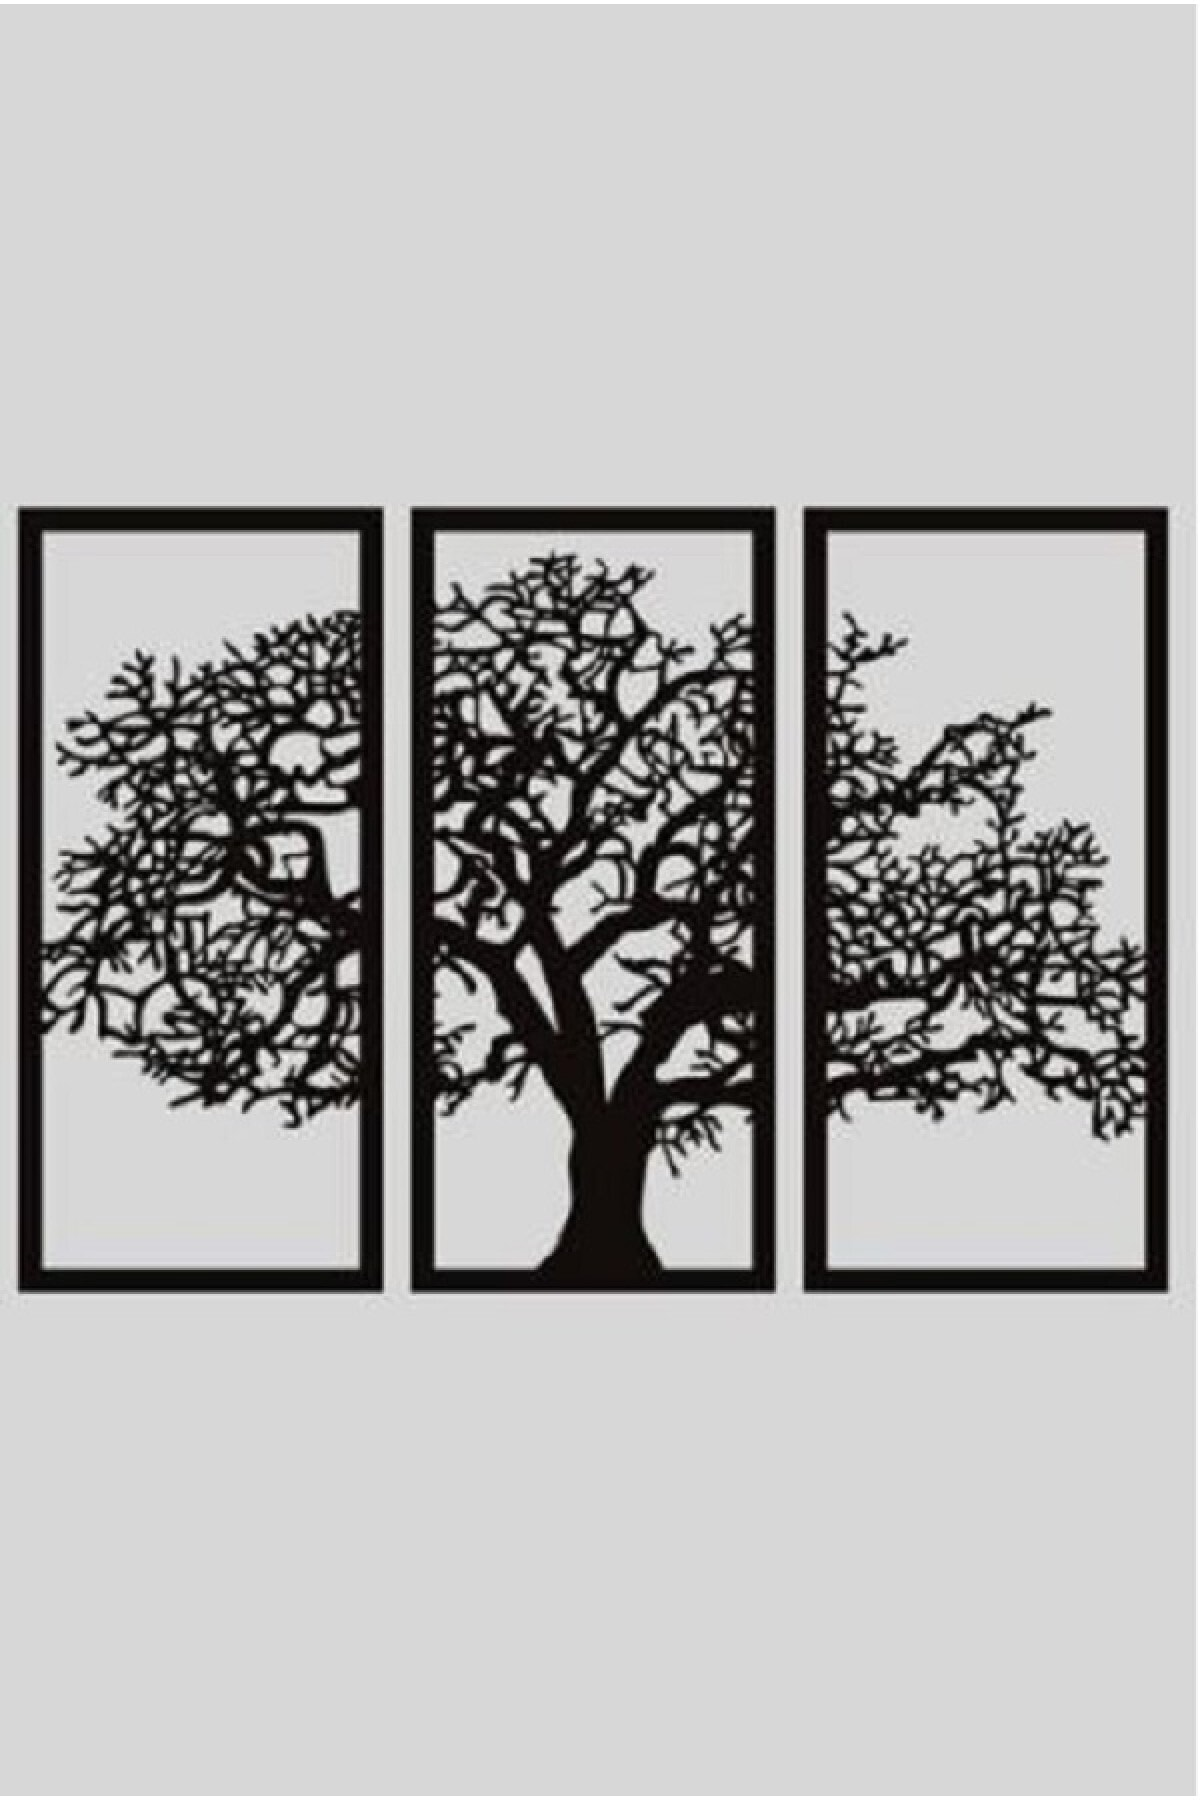 Wood Laser Cut Wall Decor Will Add Color To Your Loved Ones' Homes And Offices, And You Can Make Your Wall Decor By Creating Relieving Rheumatism And Cold